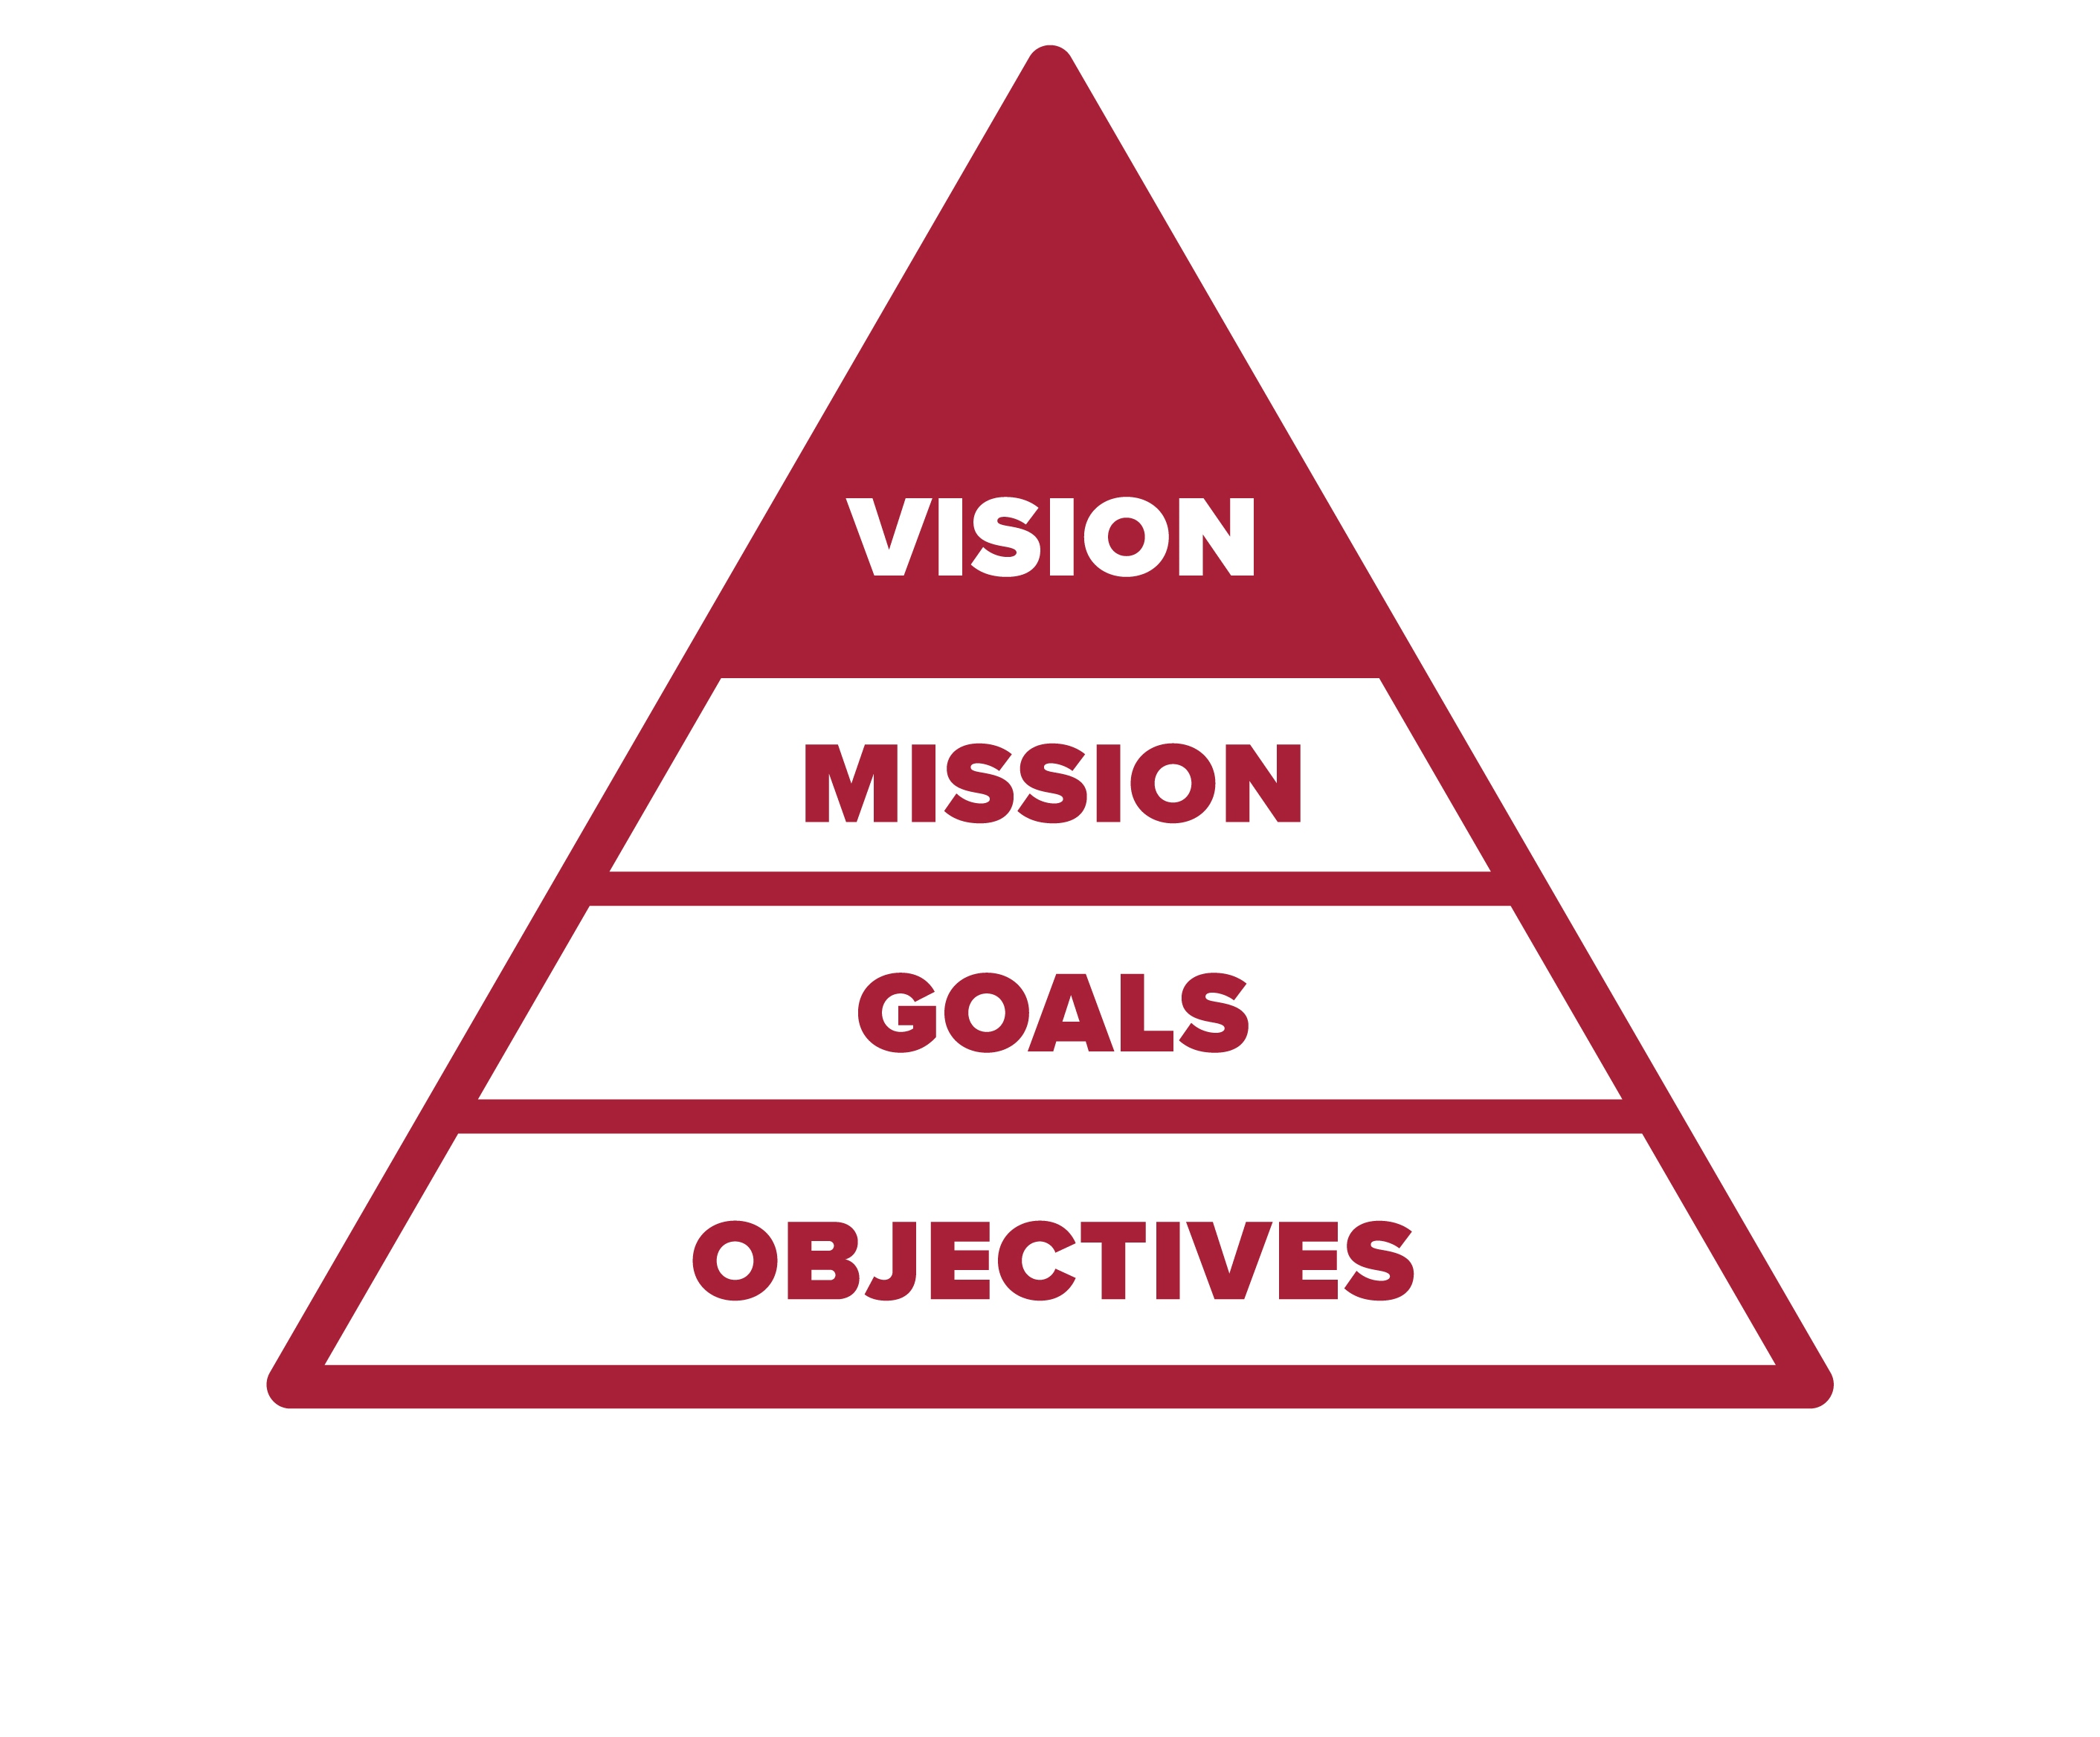 Image of icon for vision statement